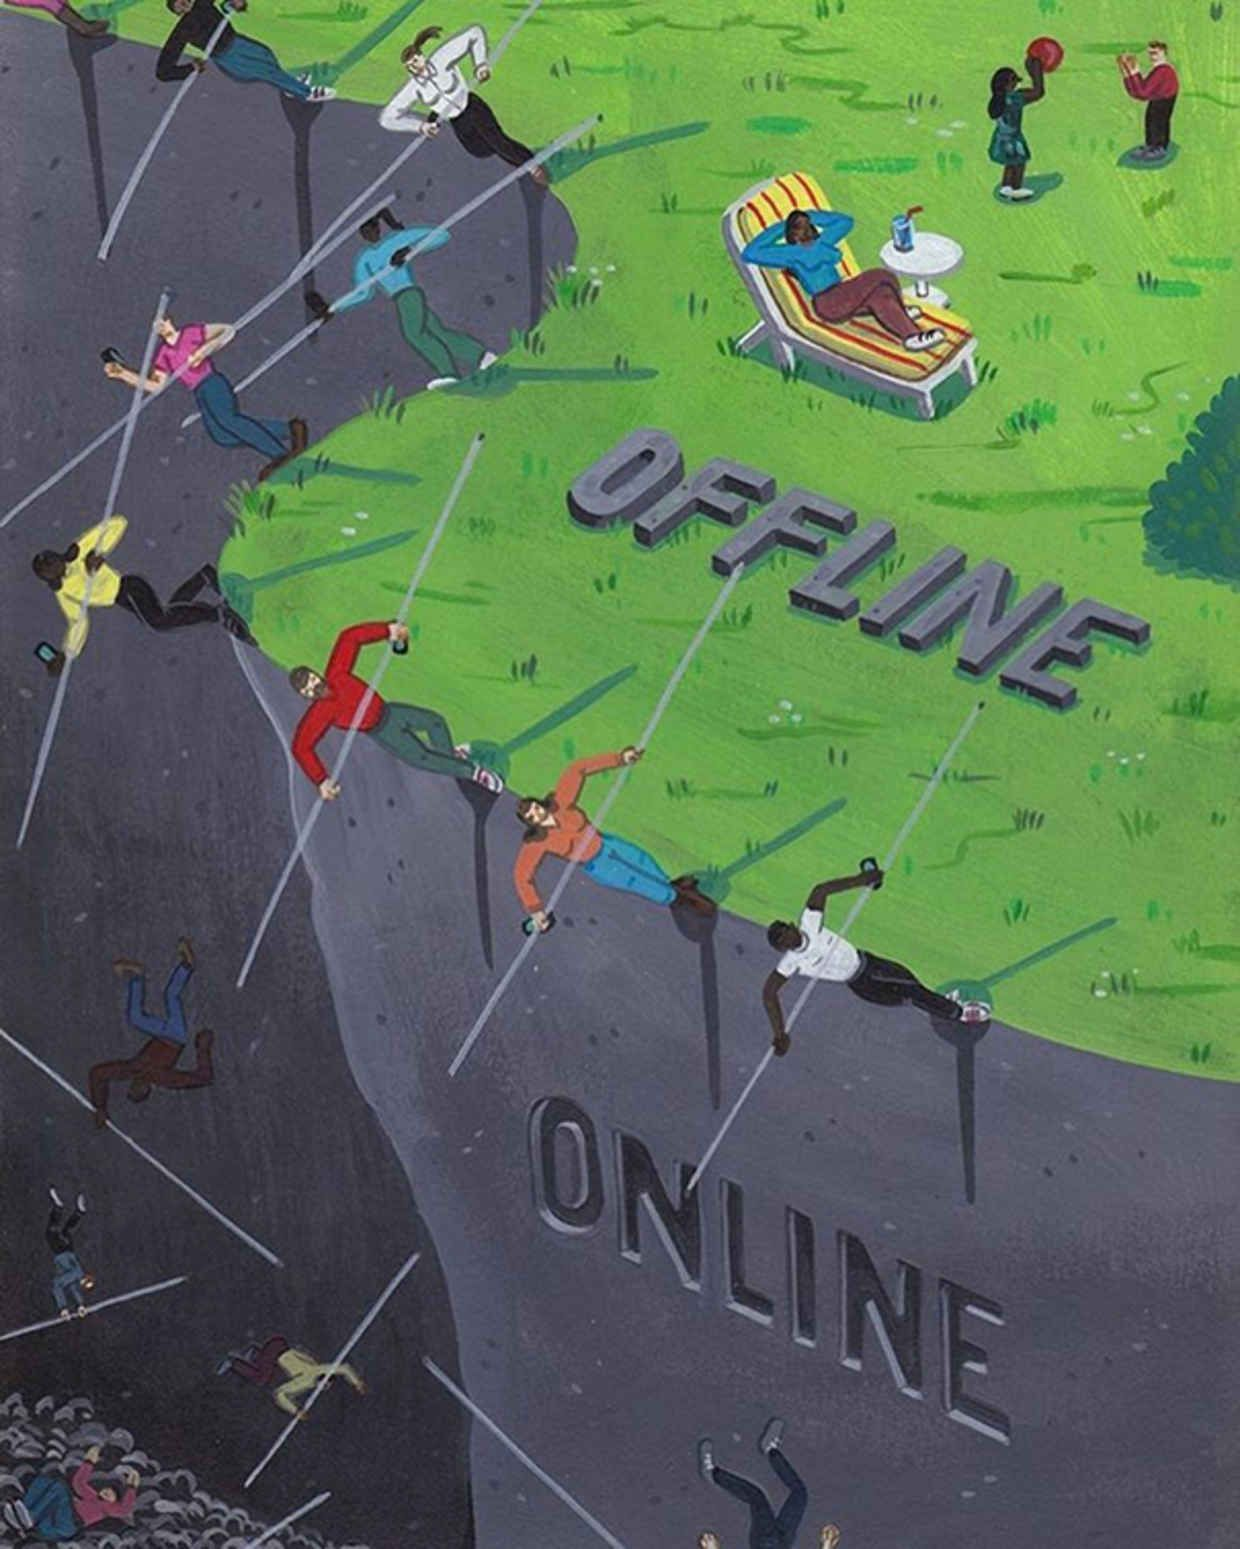 Belgian illustrator Brecht Vandenbroucke uses his Instagram account to share some brilliant satirical illustrations that show how addicted we are to social media. His drawings deliver a pretty harsh message, yet still come across as quite playful - almost as if they're from a children's book. Some of them aren't obvious to get at first, so let us know in the comments if there's any you can't get your head around.Don't miss out on UltraLinx-related content straight to your emails. Subscribe…